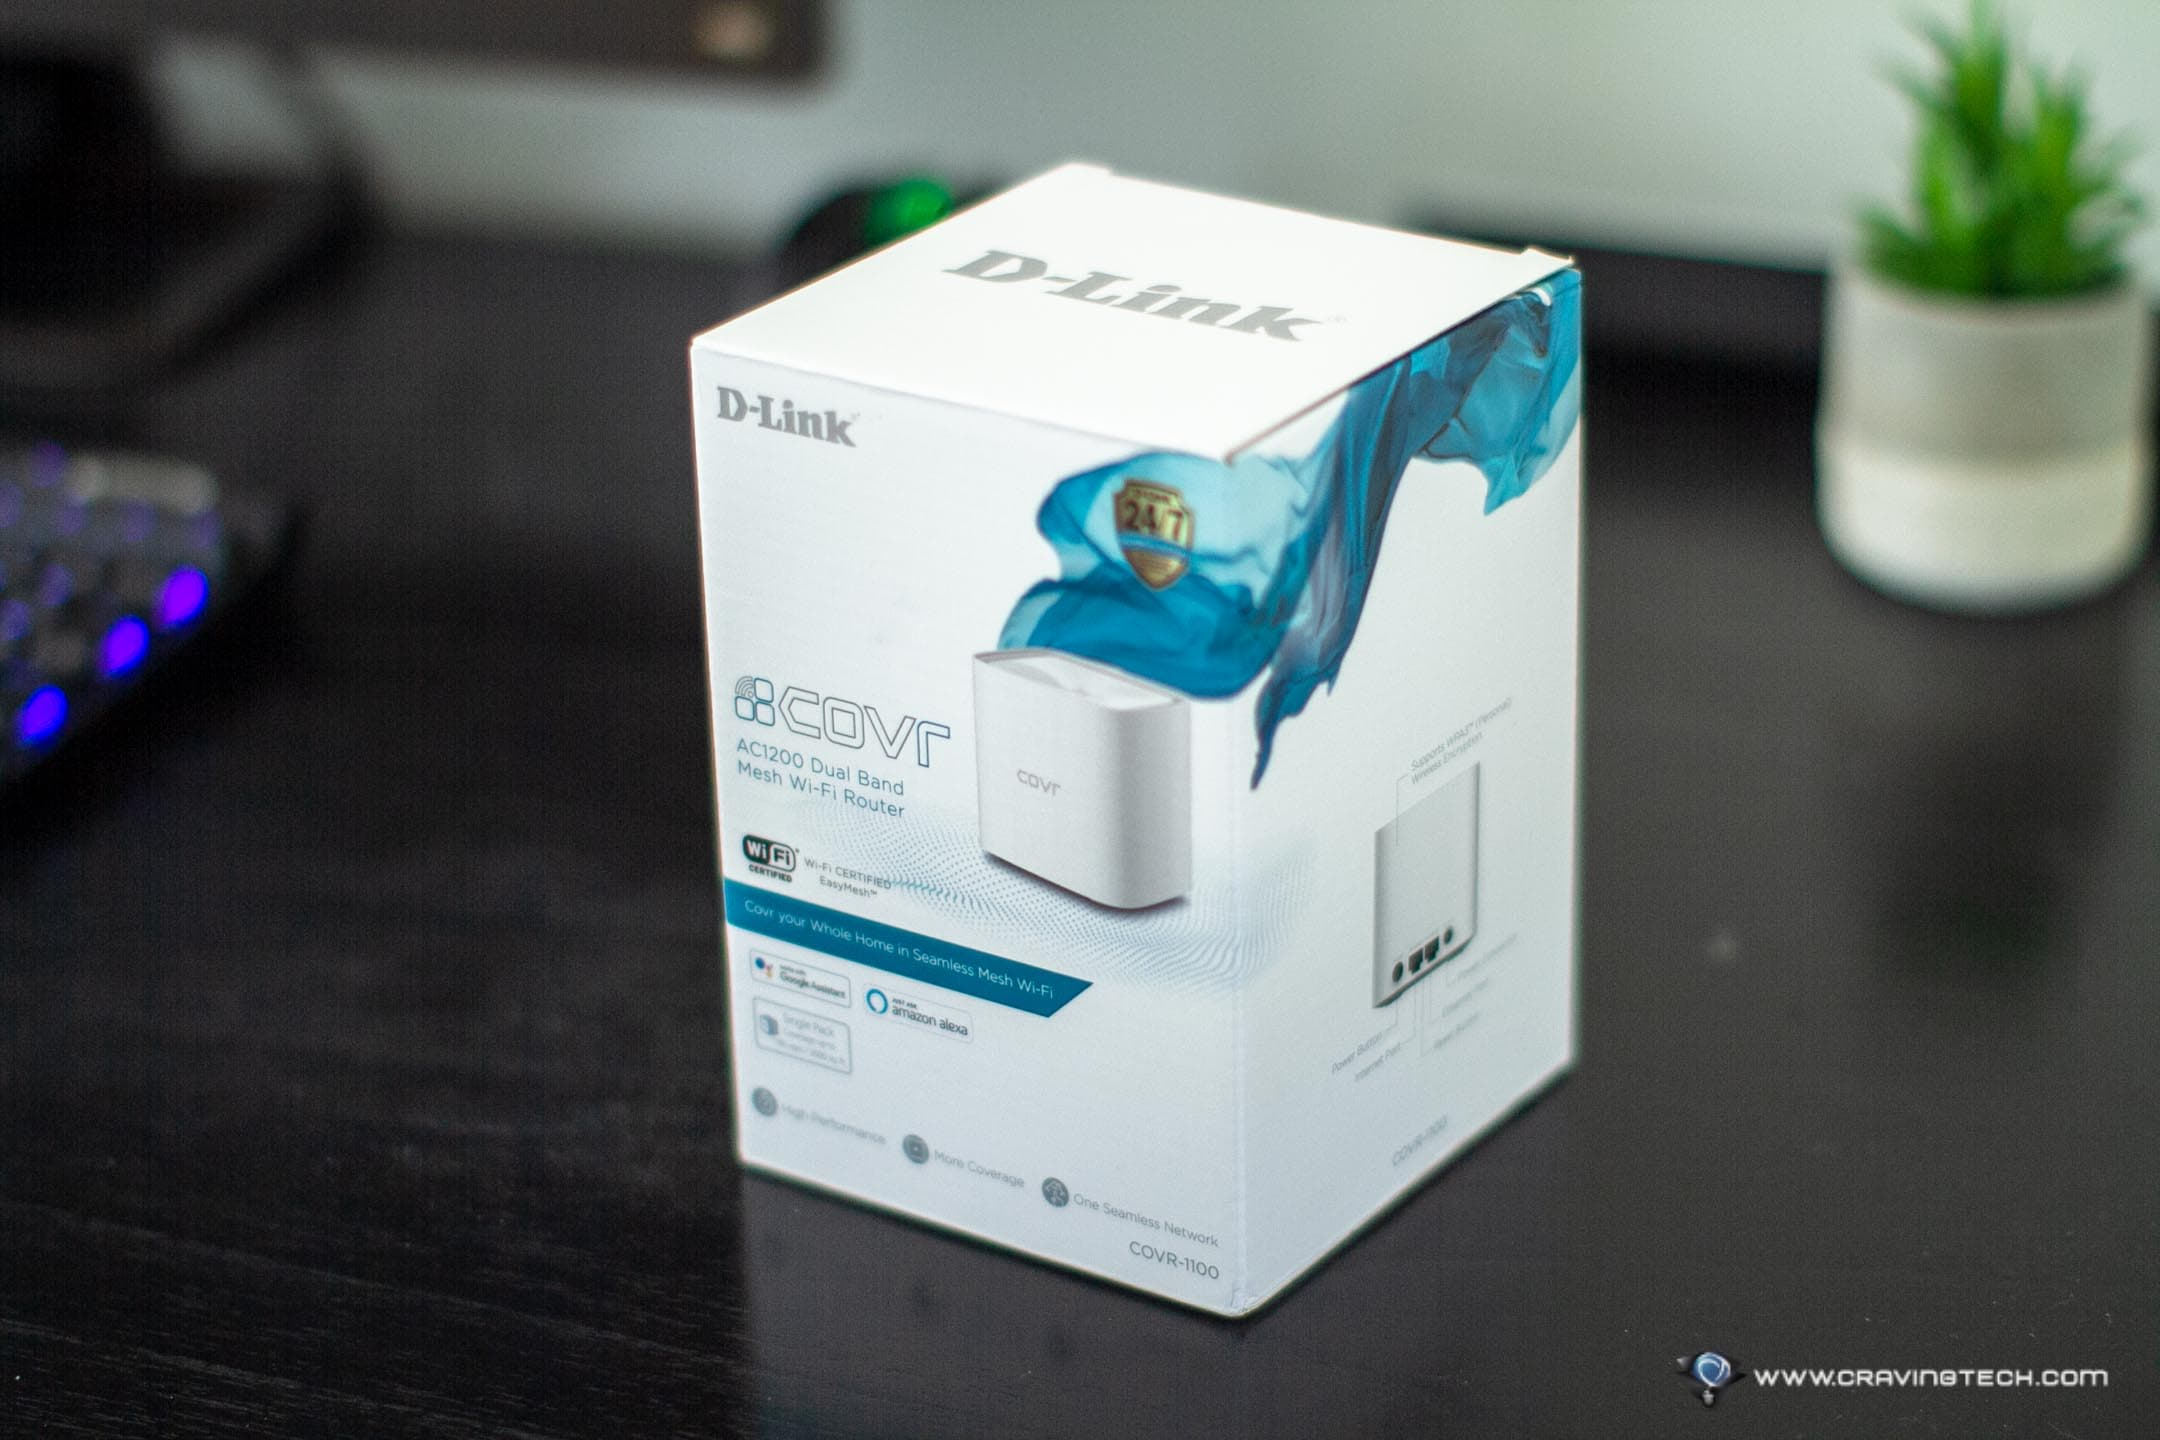 Extending your Mesh Network with D-Link COVR-1100